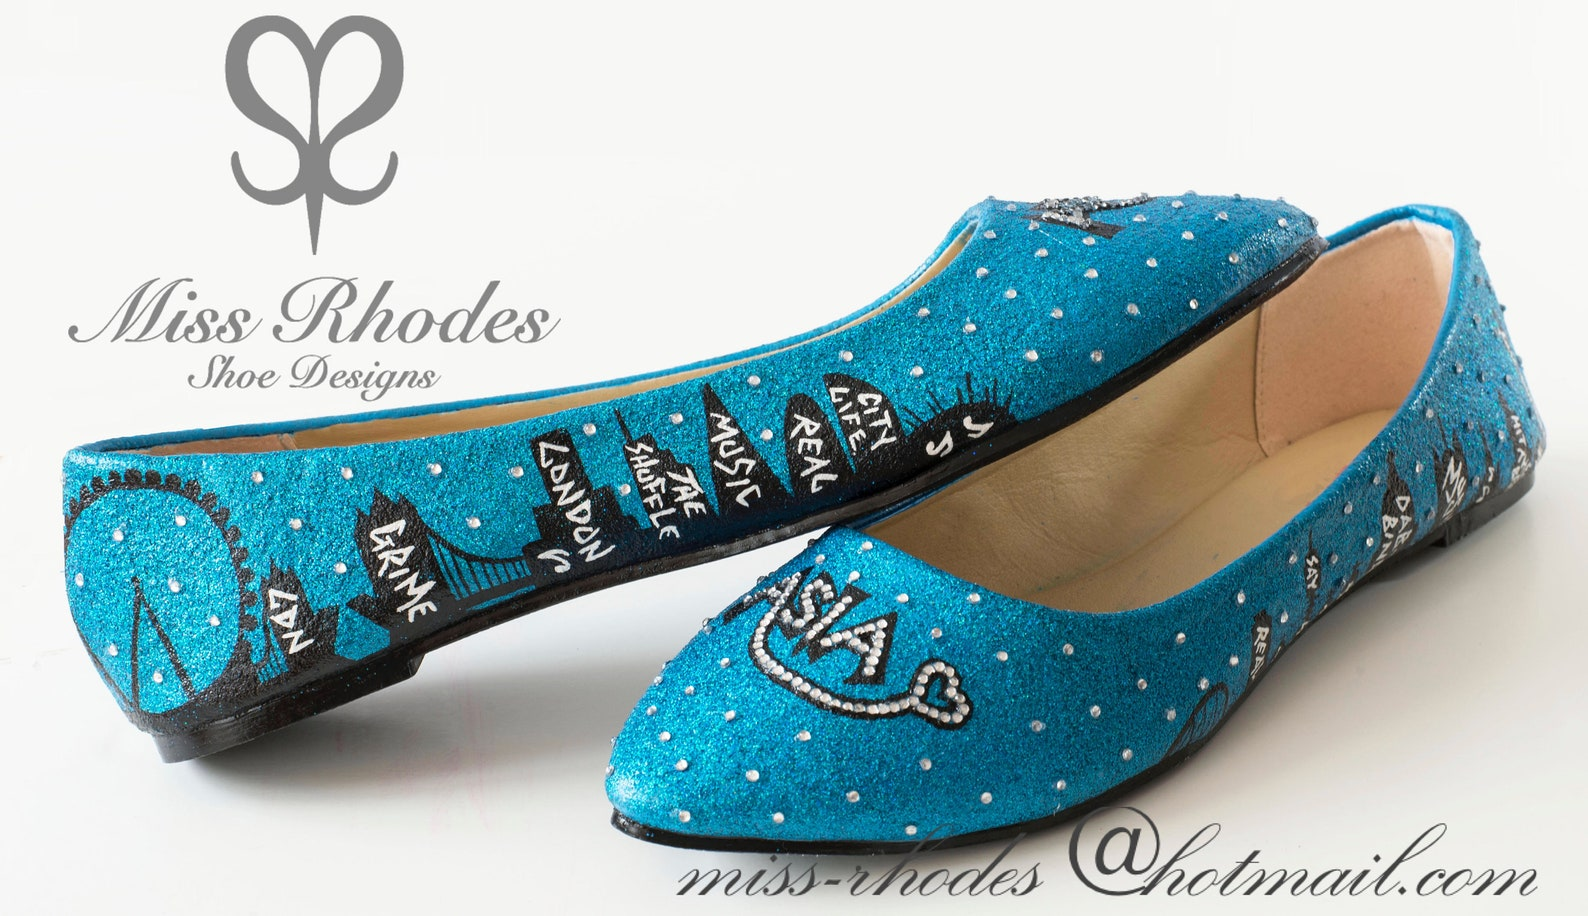 girls custom made hand painted bespoke birthday shoes ballet pumps blue glitter crystal stars london skyline graffiti london tow